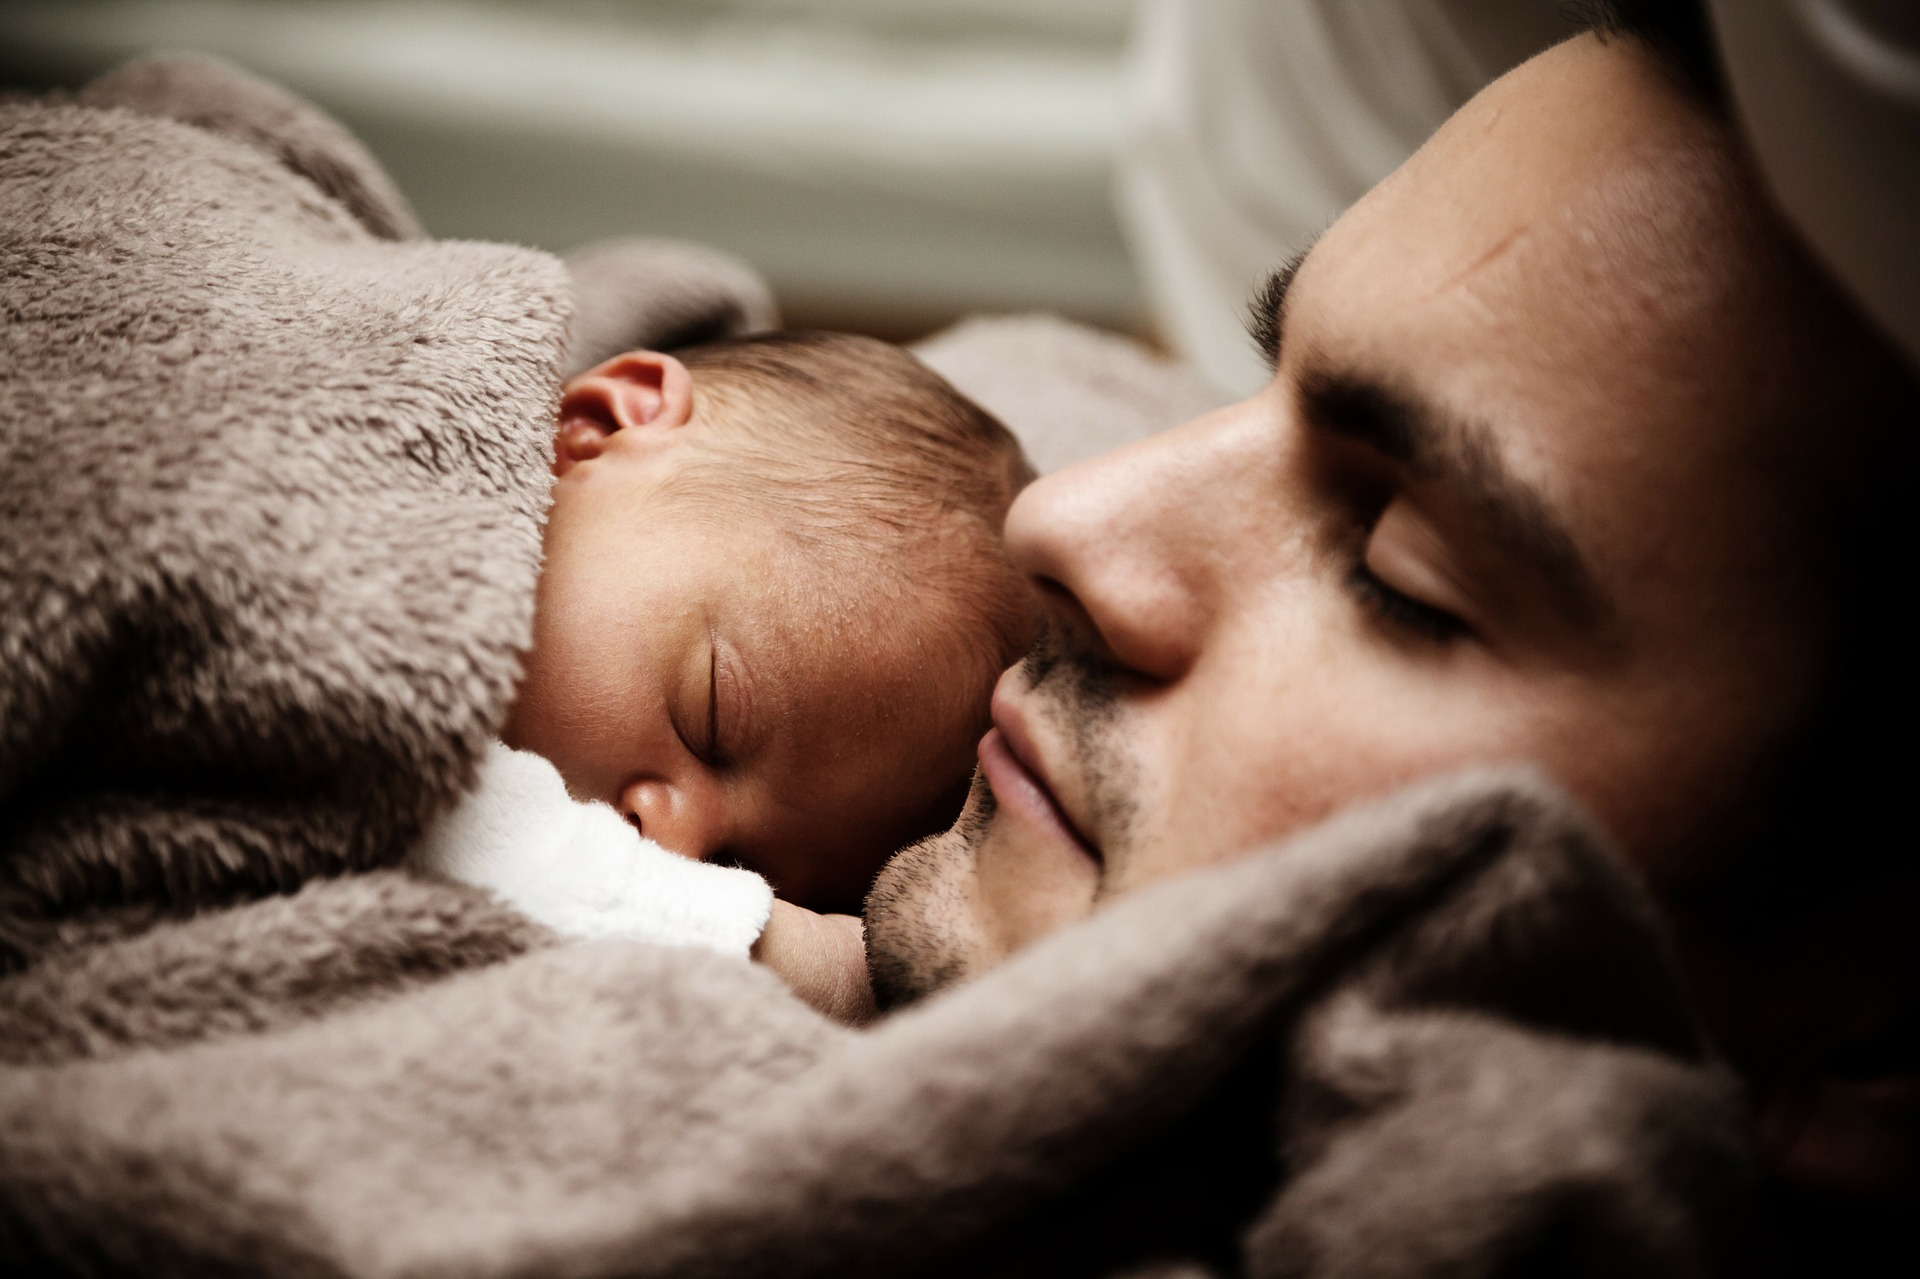 dad-and-baby-22194_1920